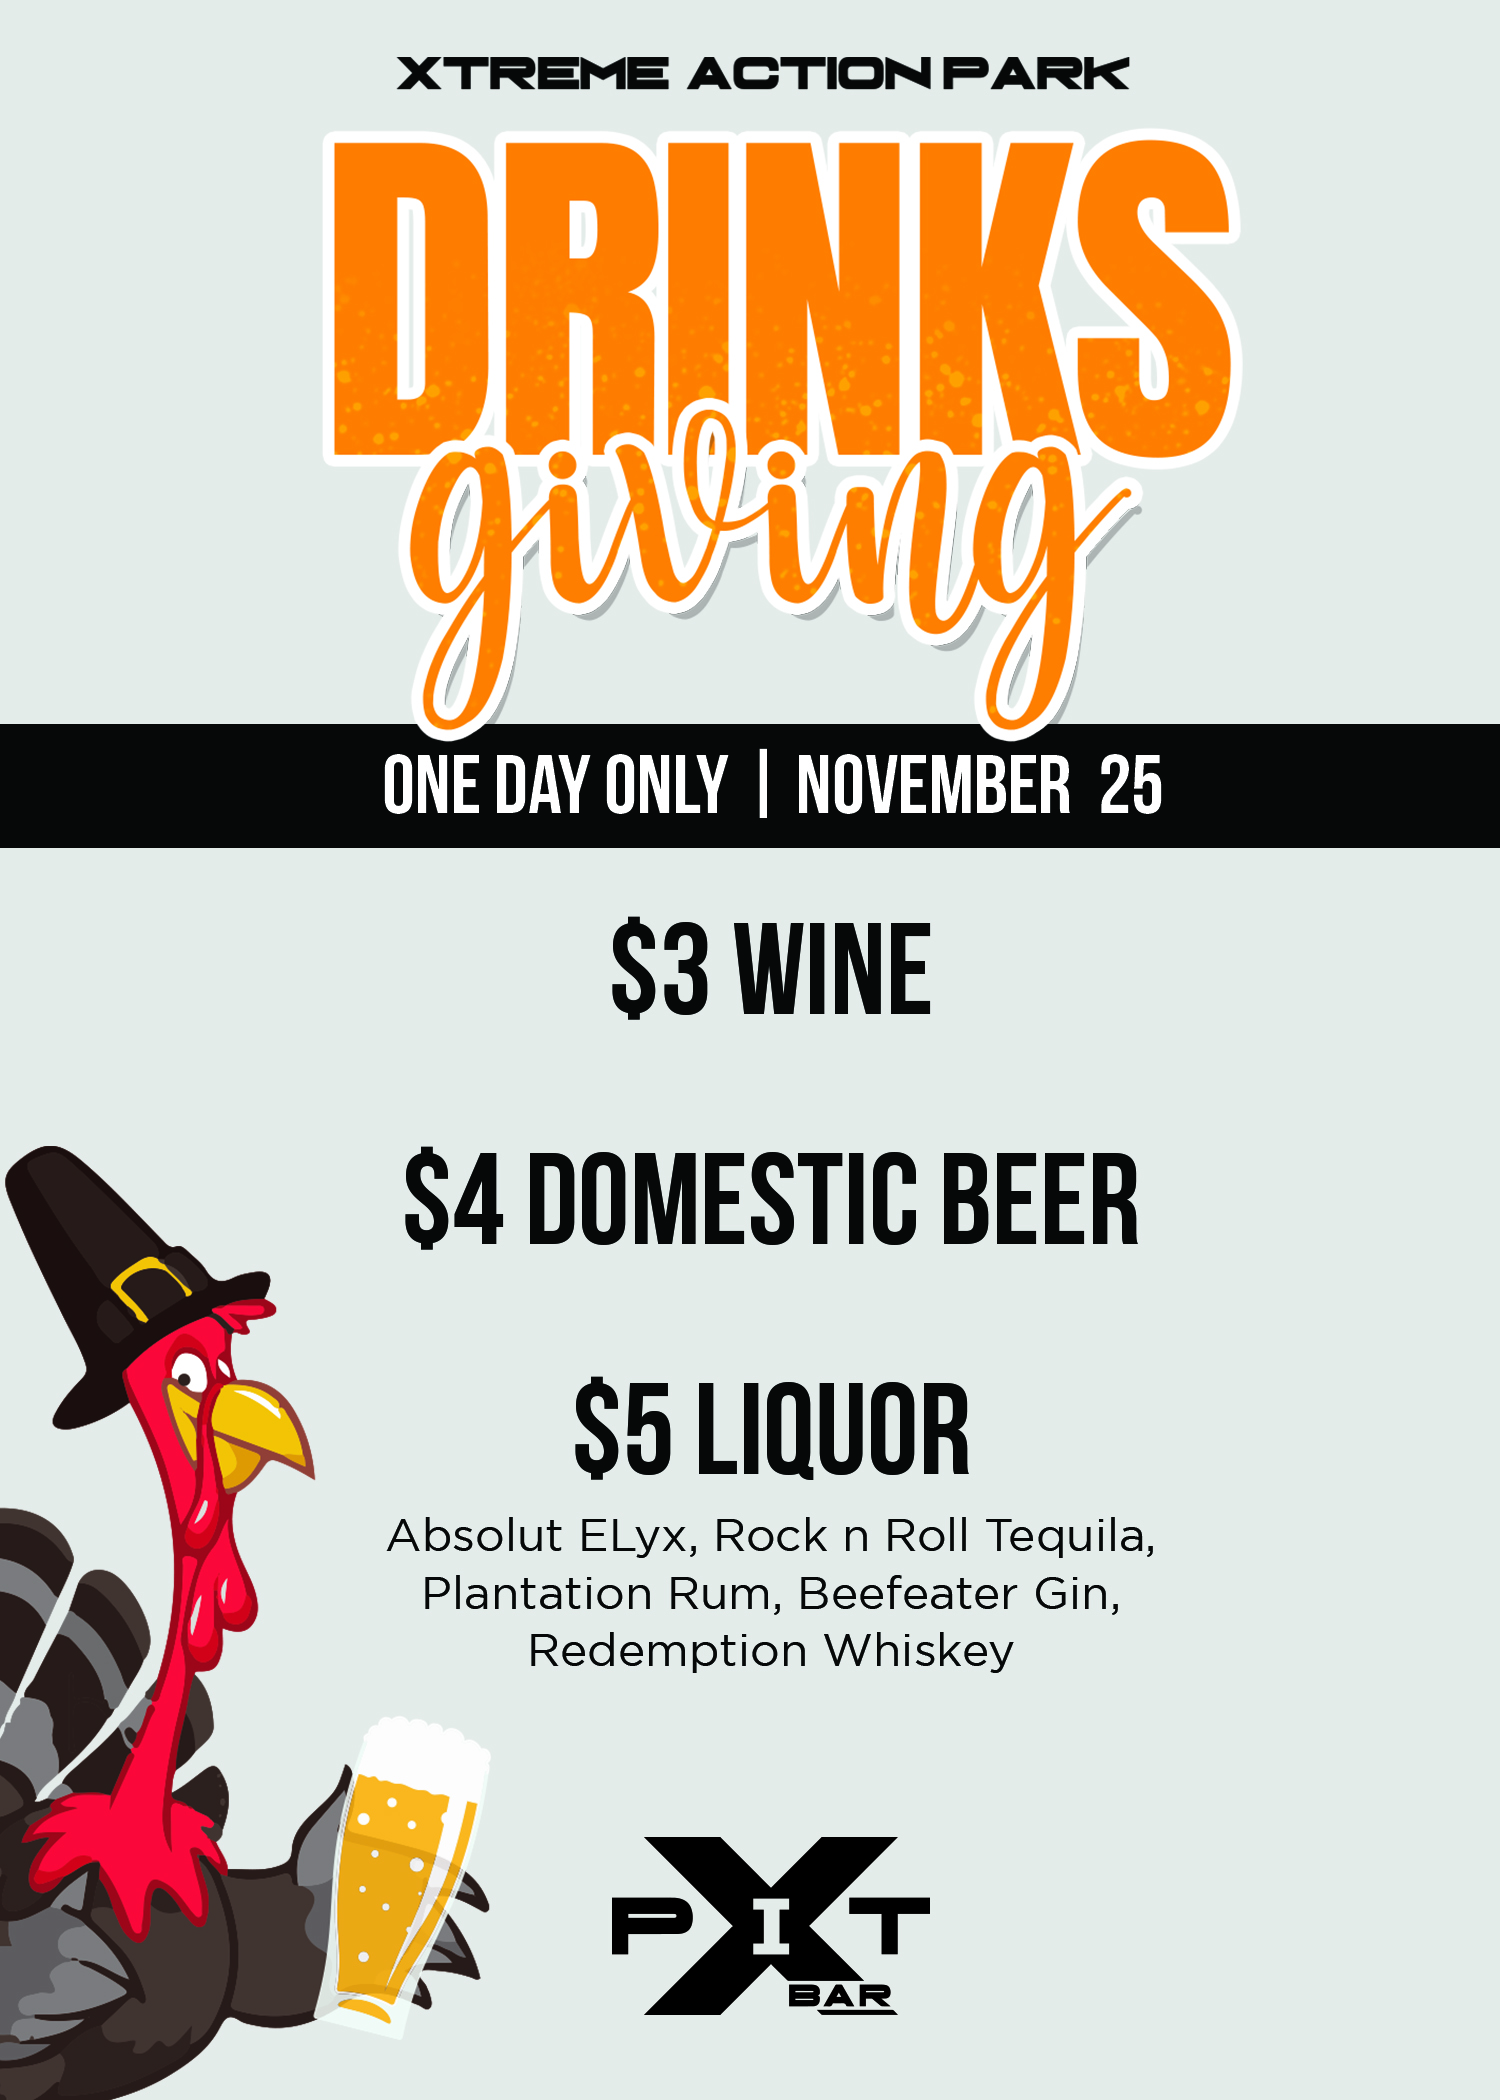 Drinksgiving only specials